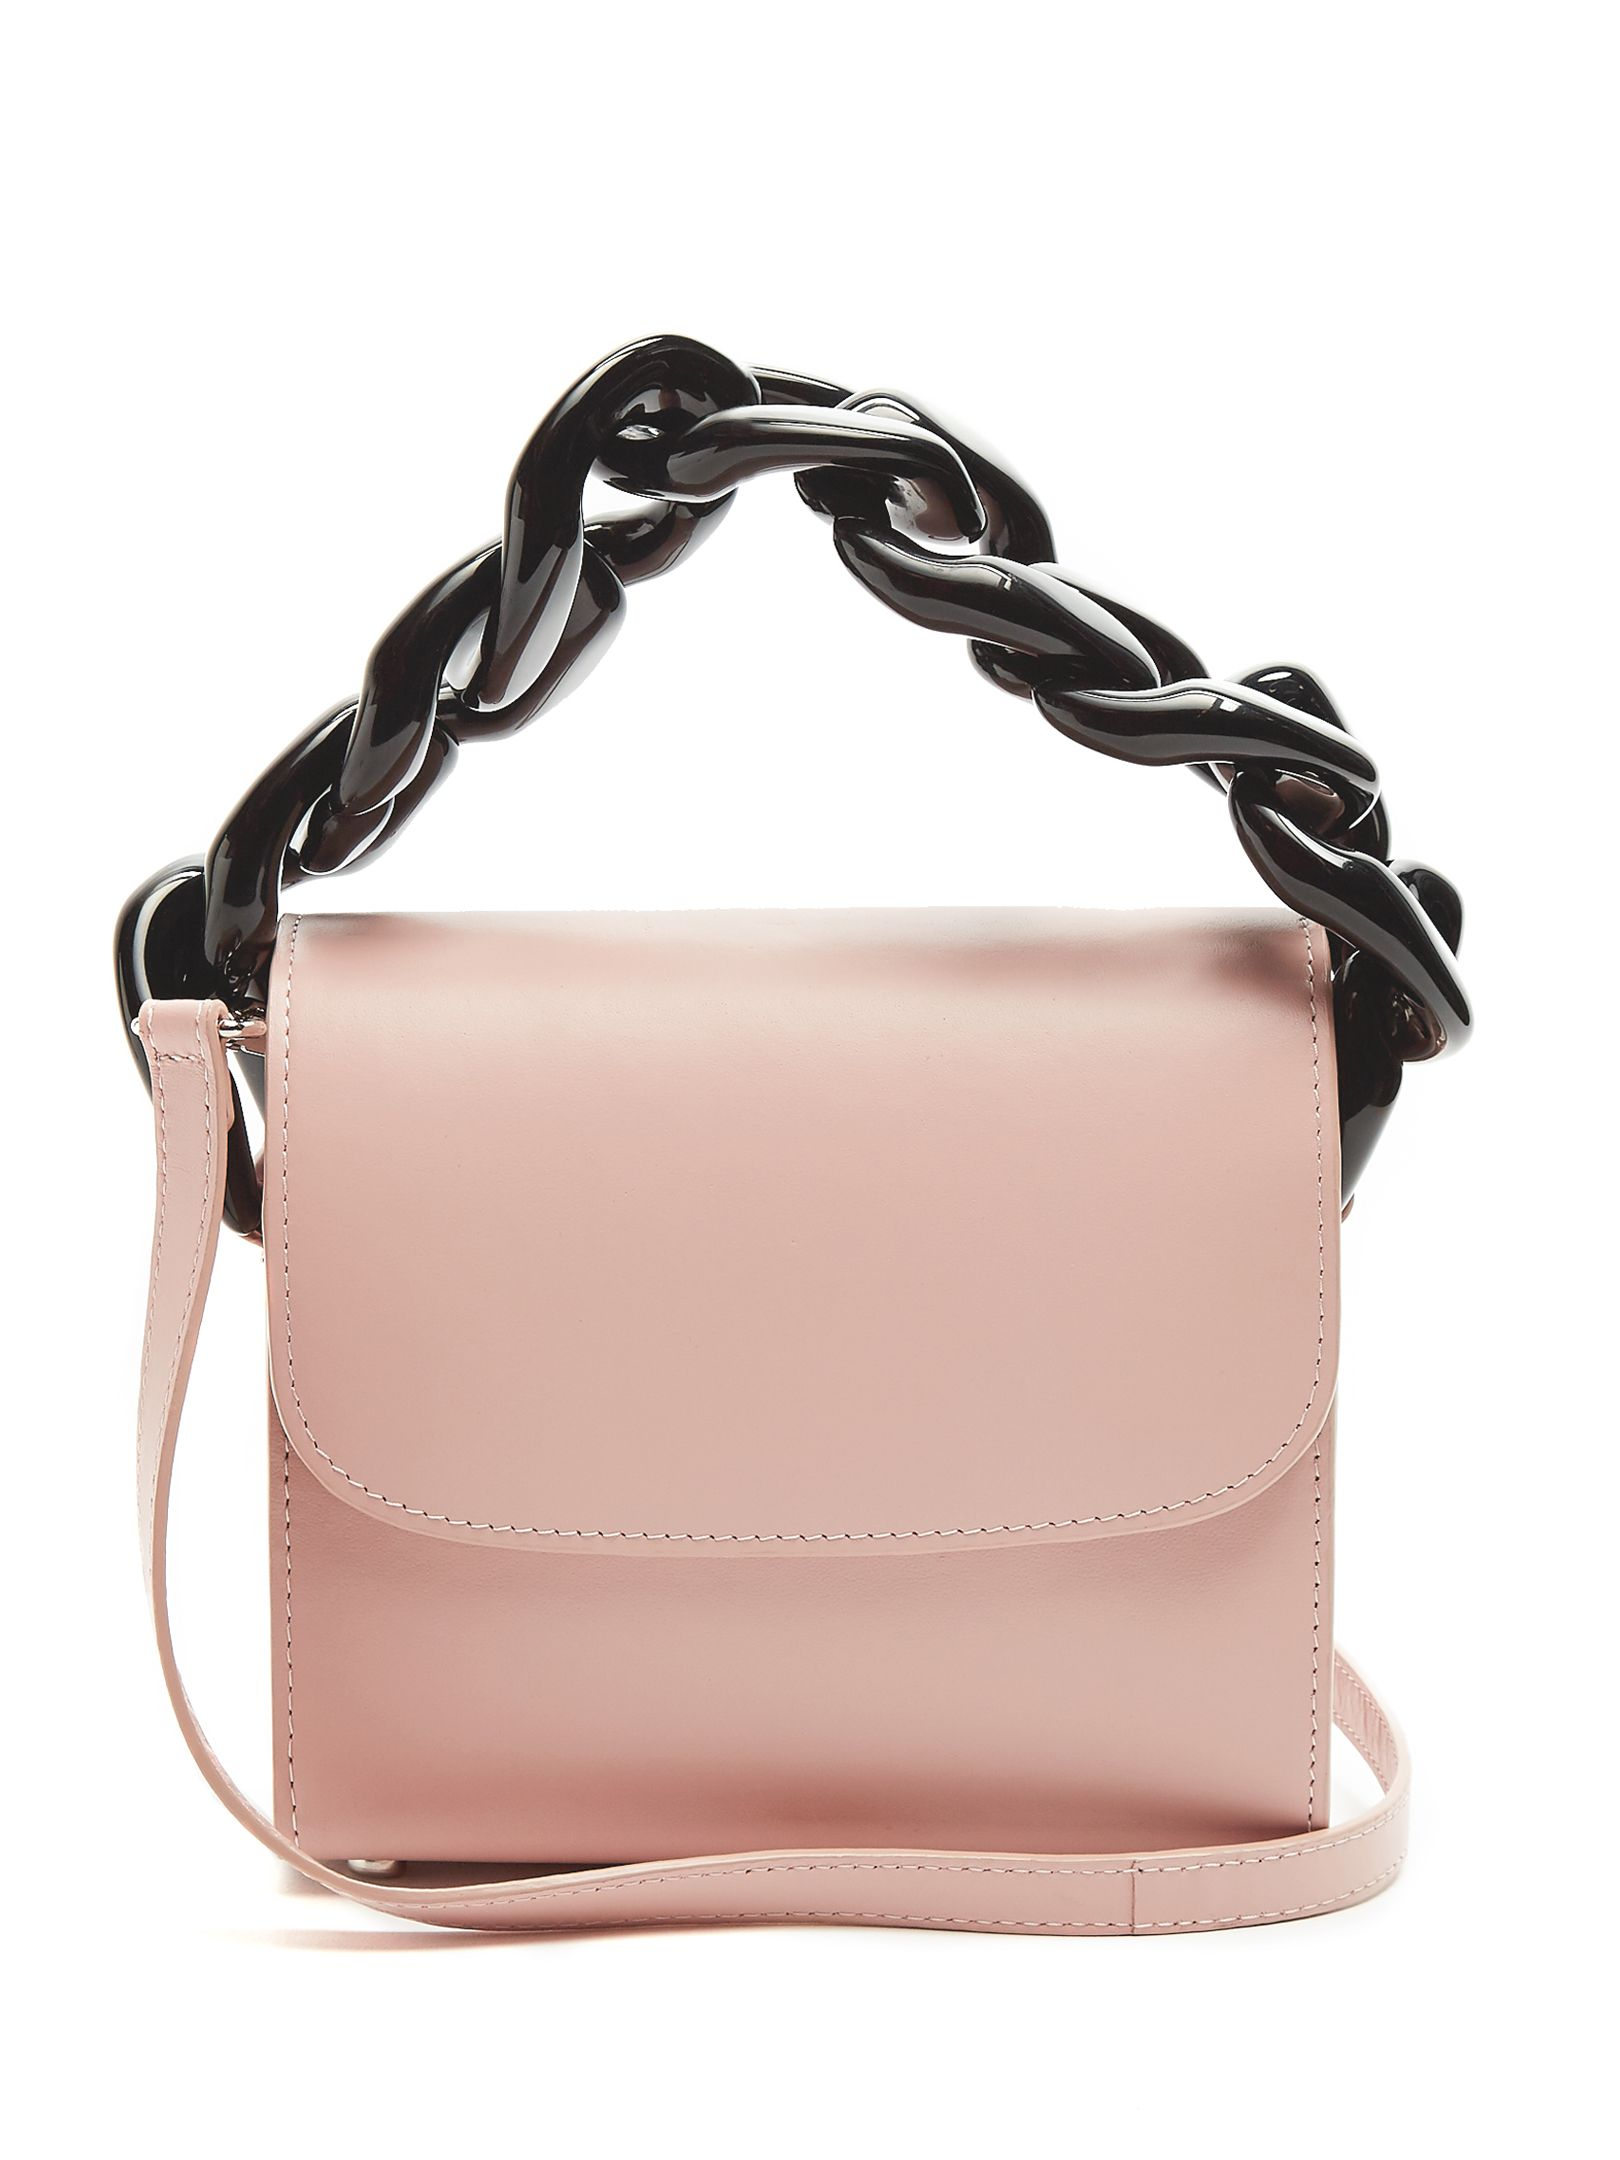 Marques Almeida Oversized Curb Chain Leather Shoulder Bag